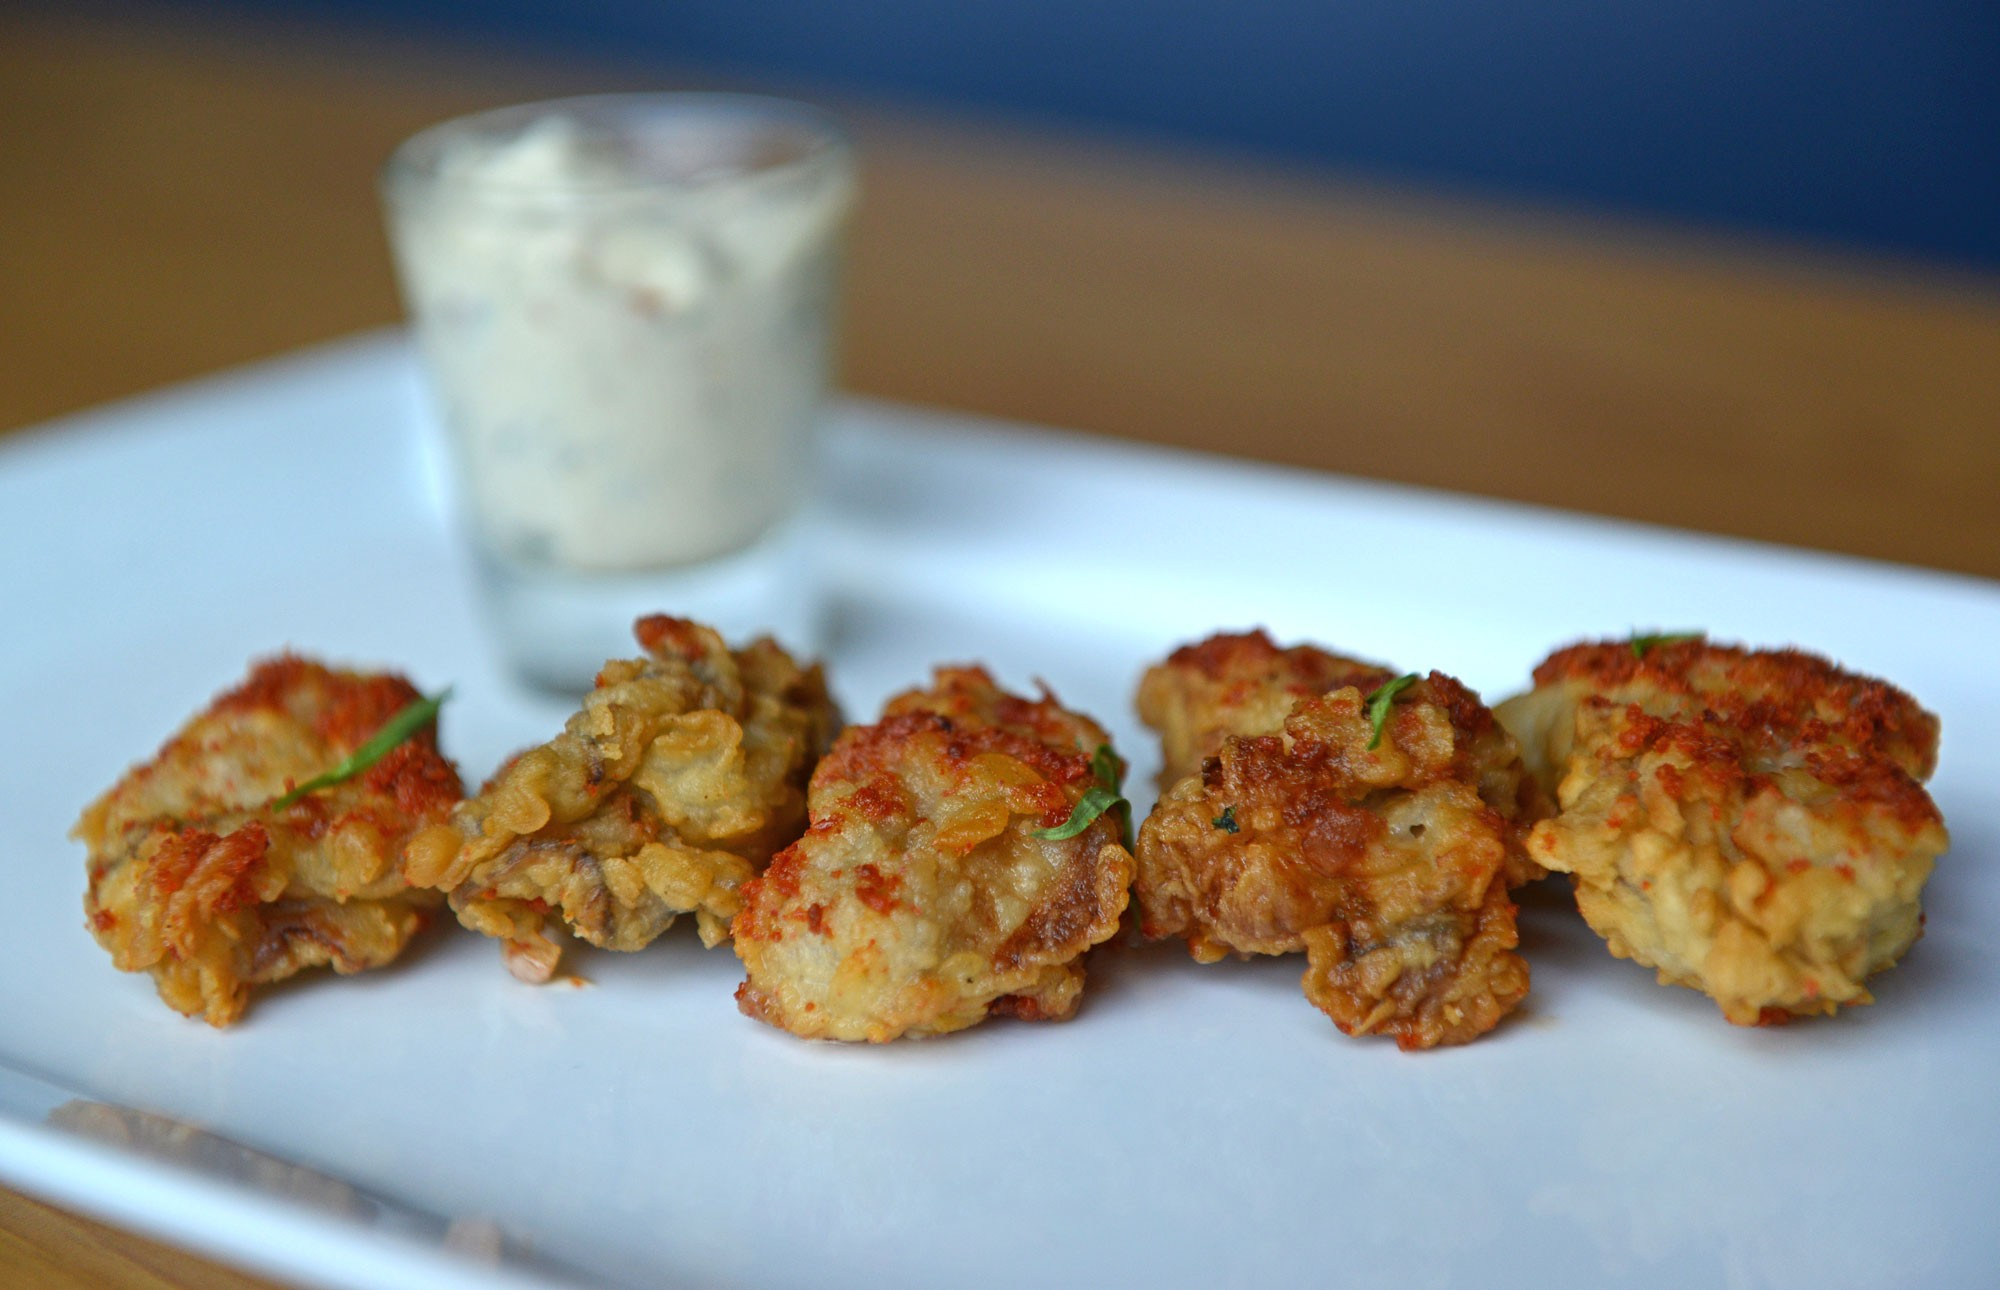 Fried oysters dusted with bacon powder will be featured at this weekend's first  Richmond Bacon Festival at the 17th Street Farmers' Market. They are the creation of chef Mike Pendergrast at the Shockoe Bottom hot spot On the Rox. - SCOTT ELMQUIST